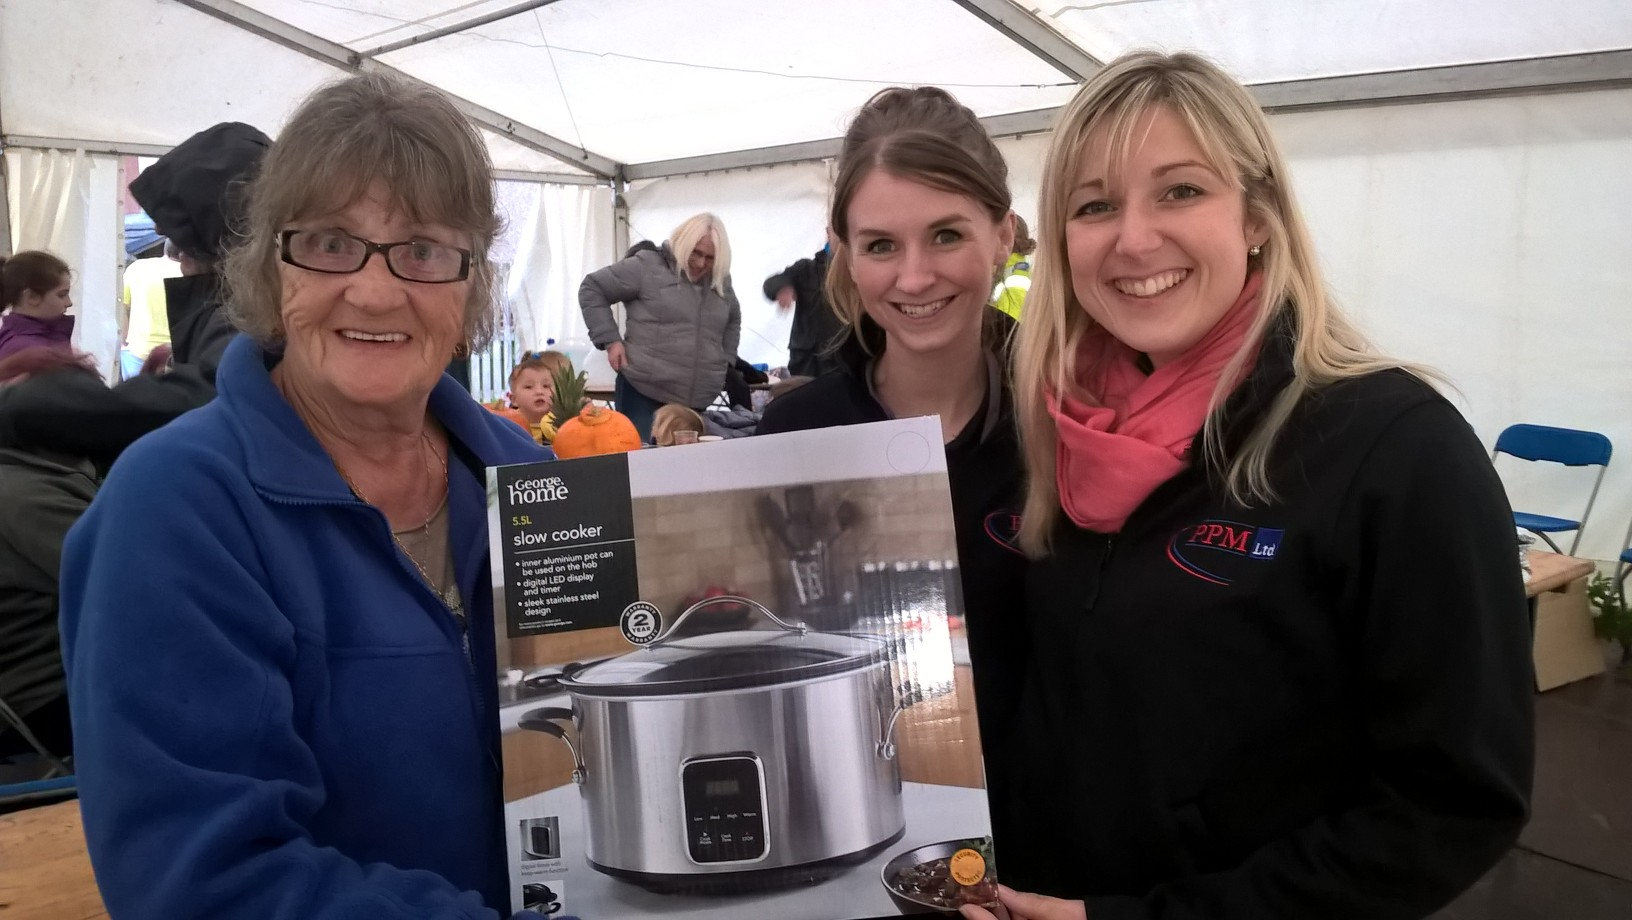 Prize Giving of Slow Cooker